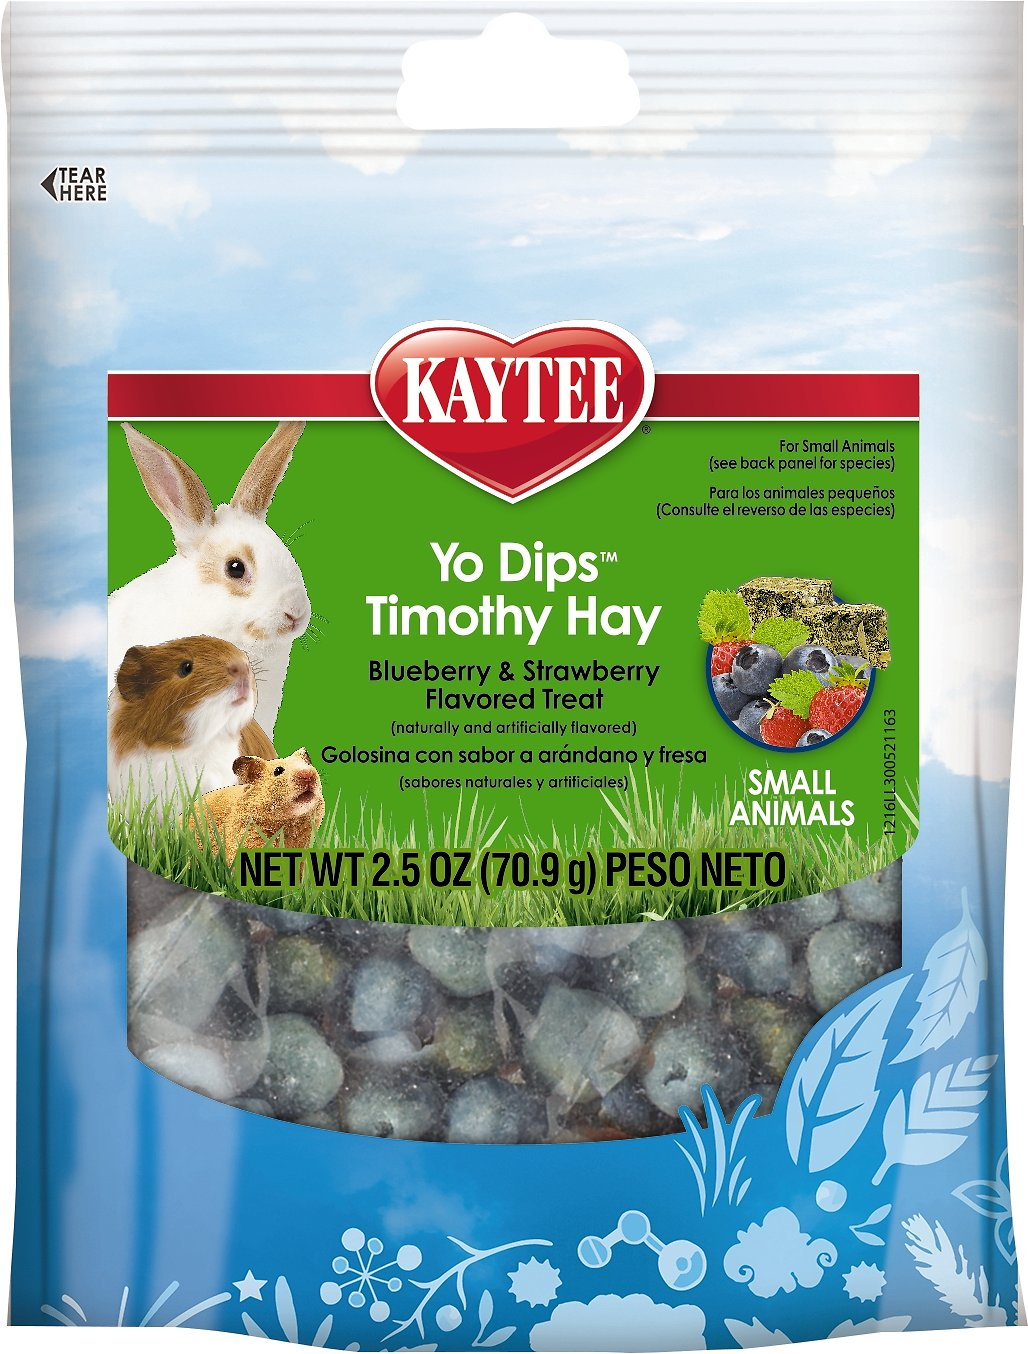 Kaytee Mixed Berry Flavor Yo Chips For Rabbit And Guinea Pig, 3.5-oz bag